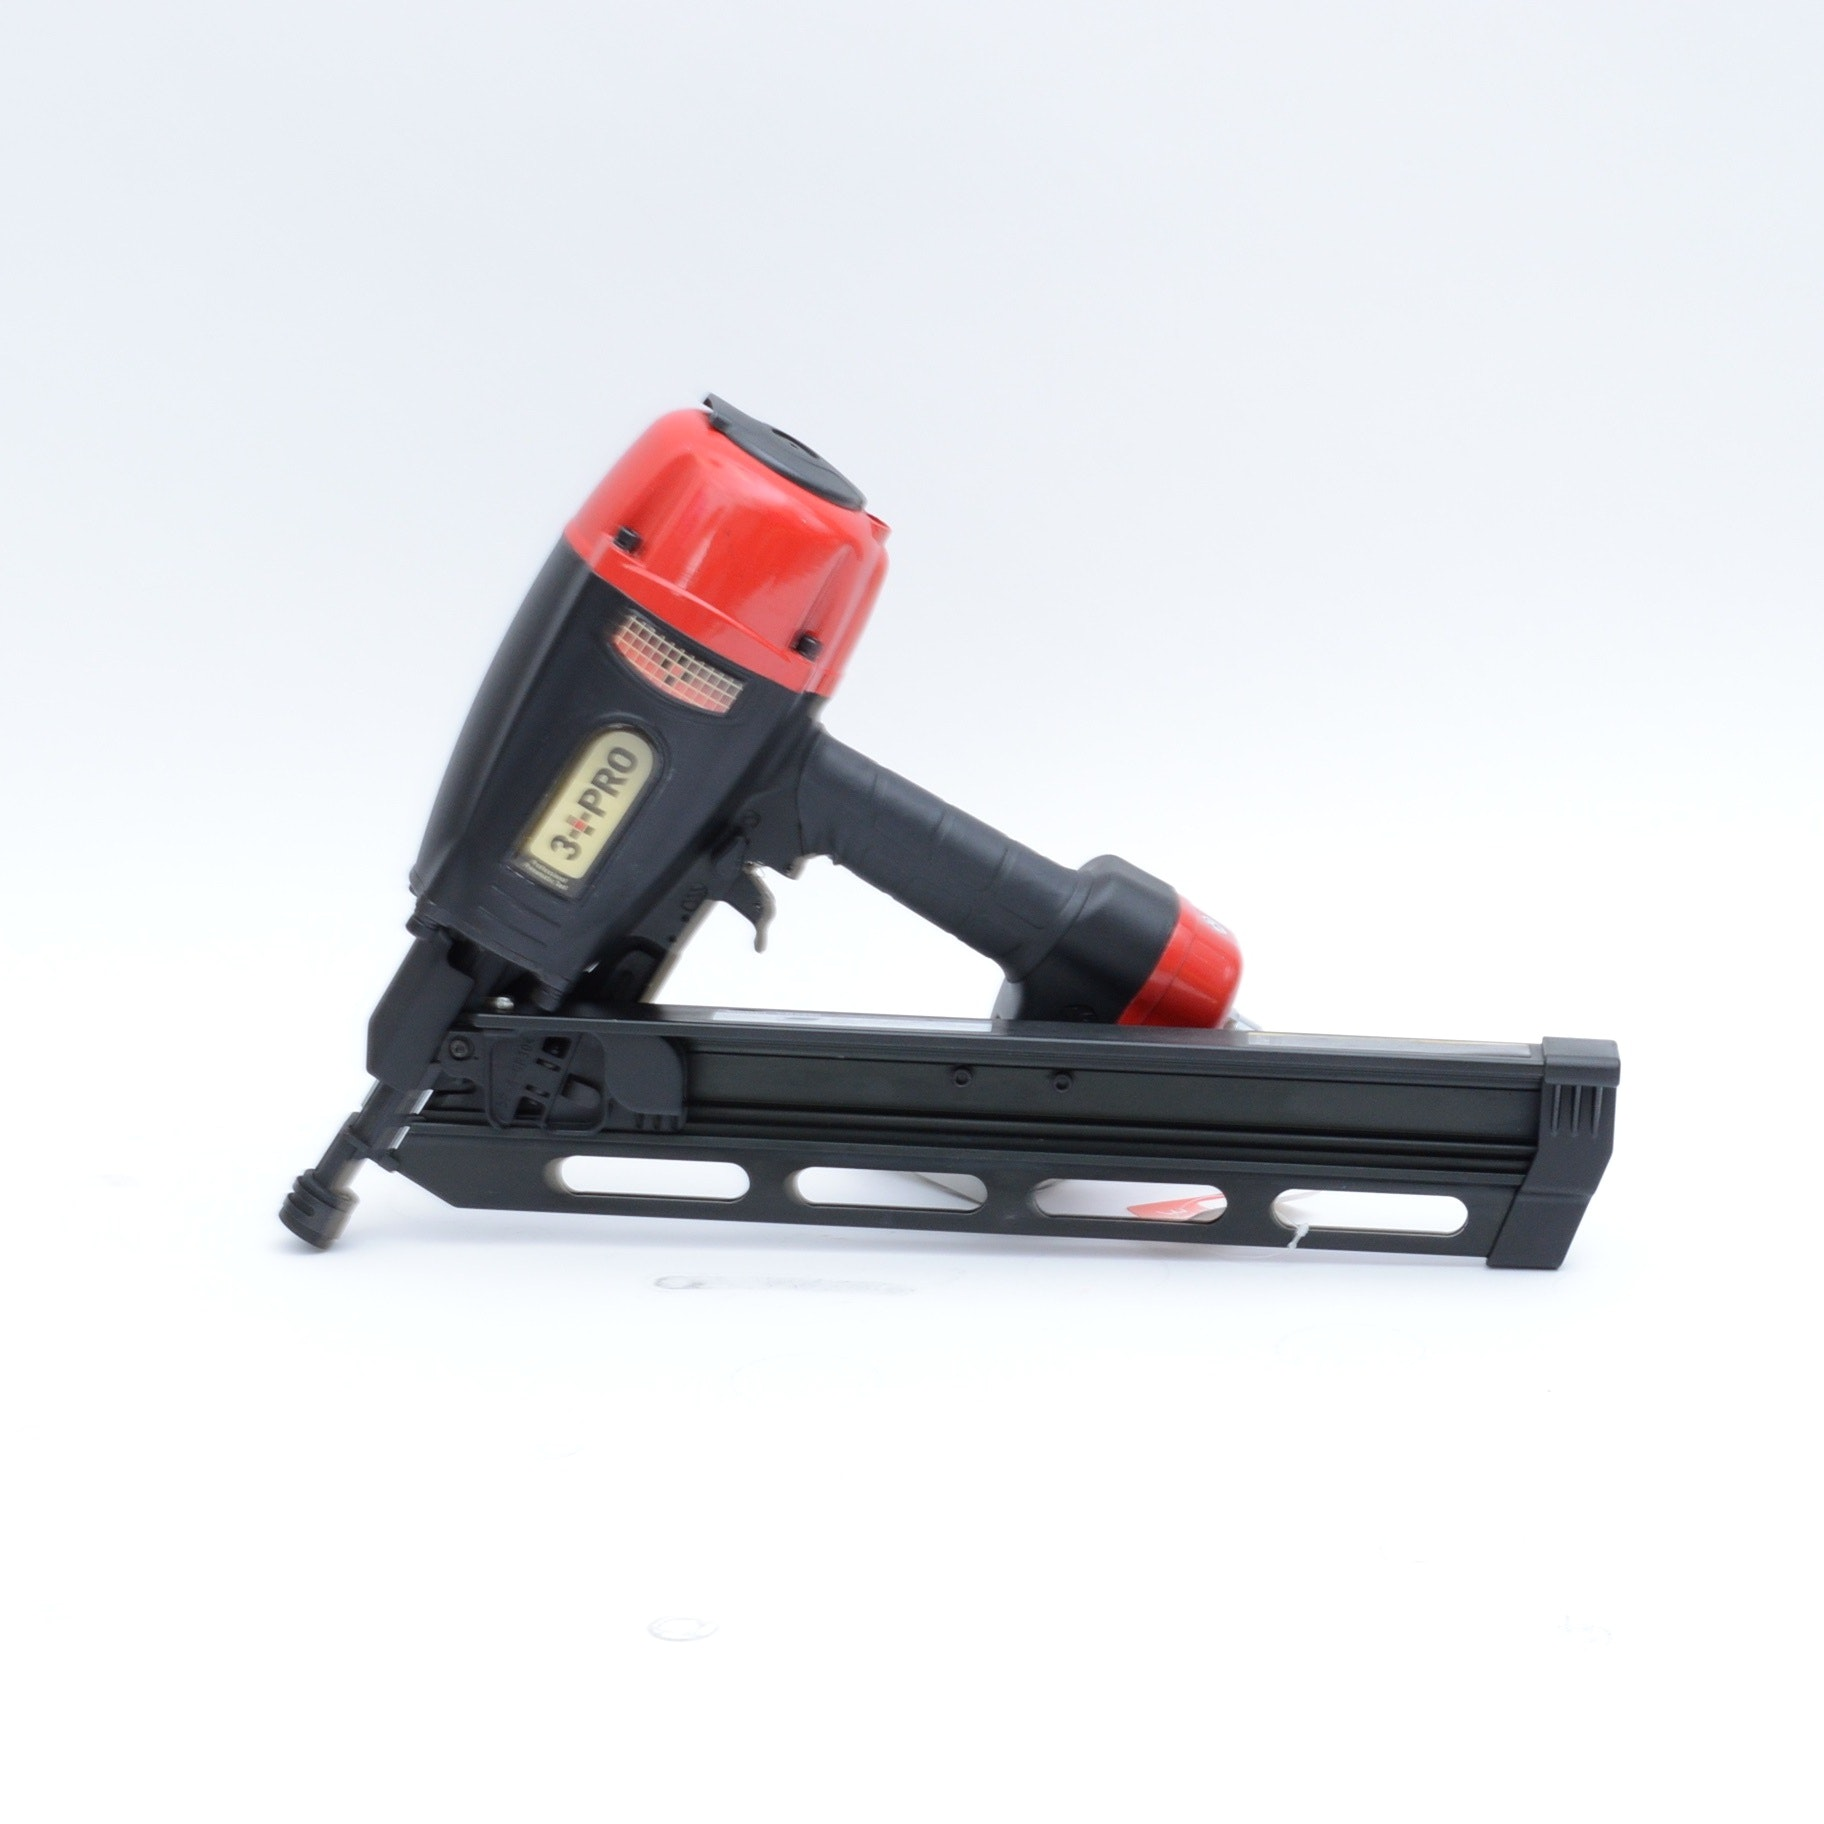 3 PRO Clipped Head Framing Nailer